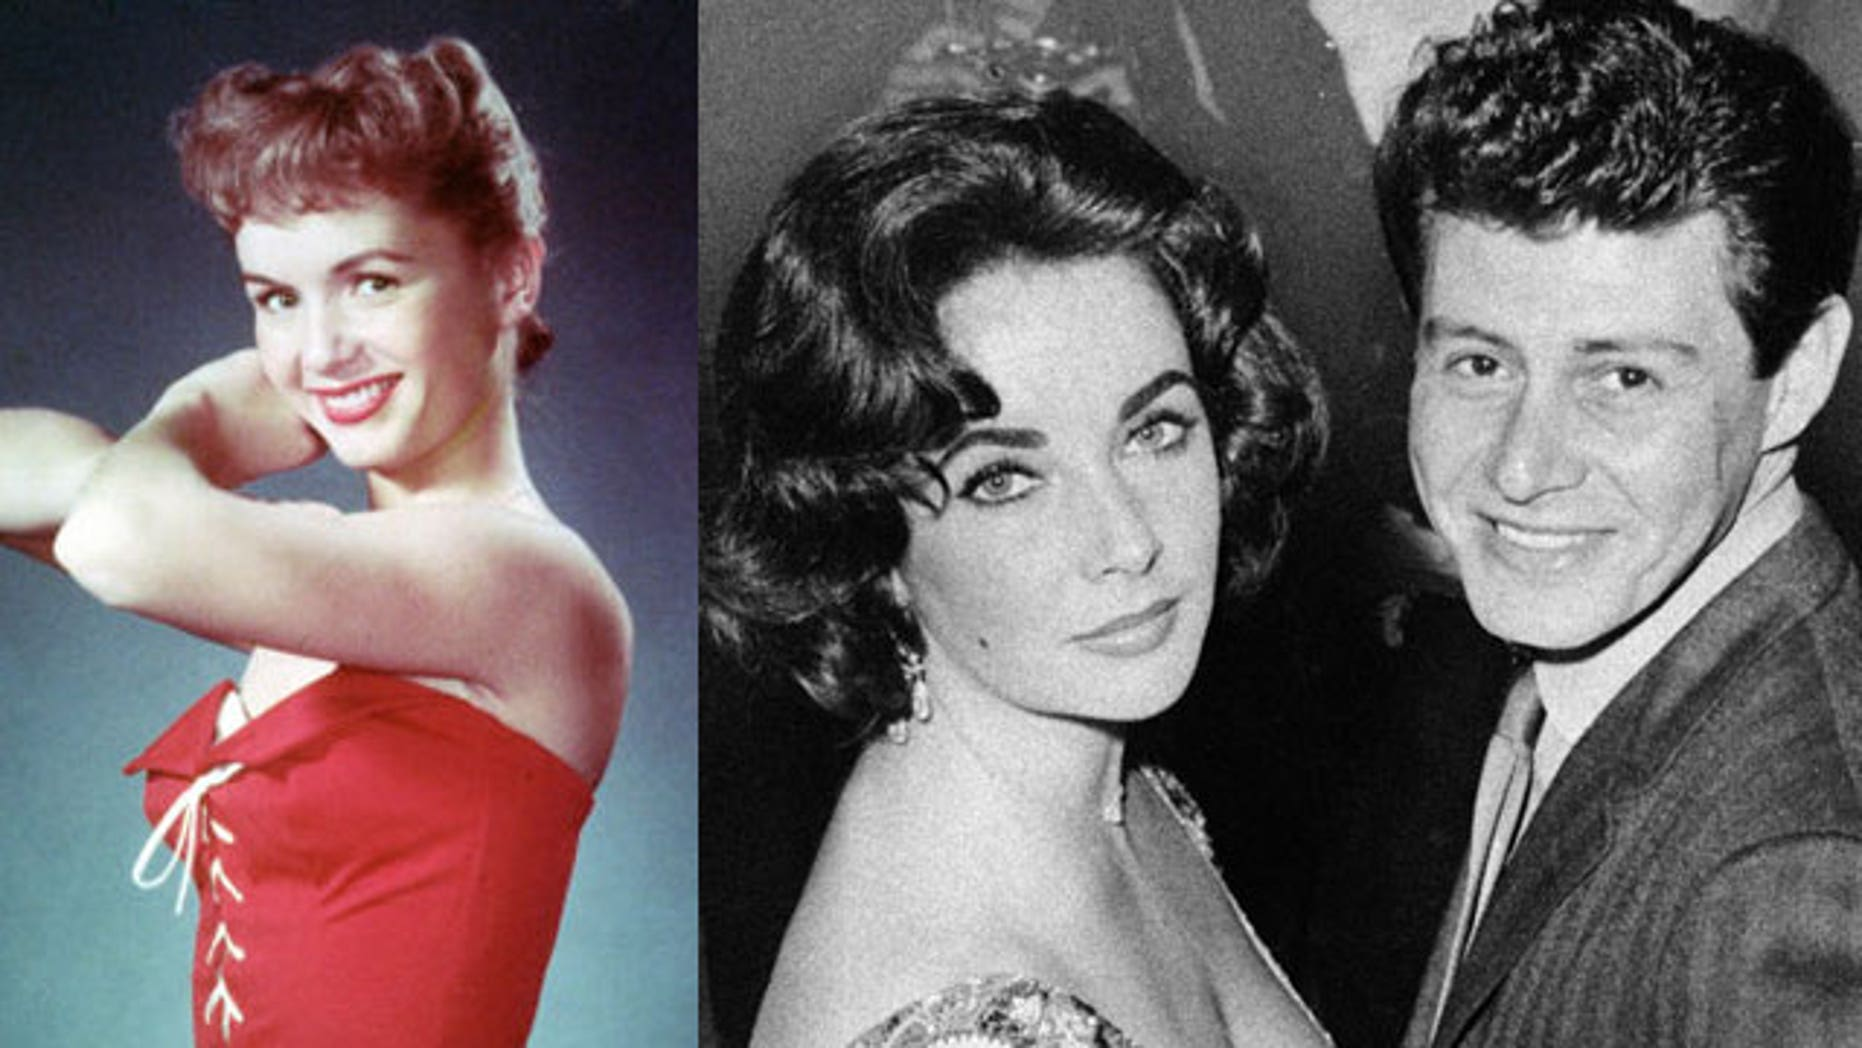 Eddie Fisher caused a scandal in 1958 when he left his wife Debbie Reynolds for his best friend's widow, Elizabeth Taylor.